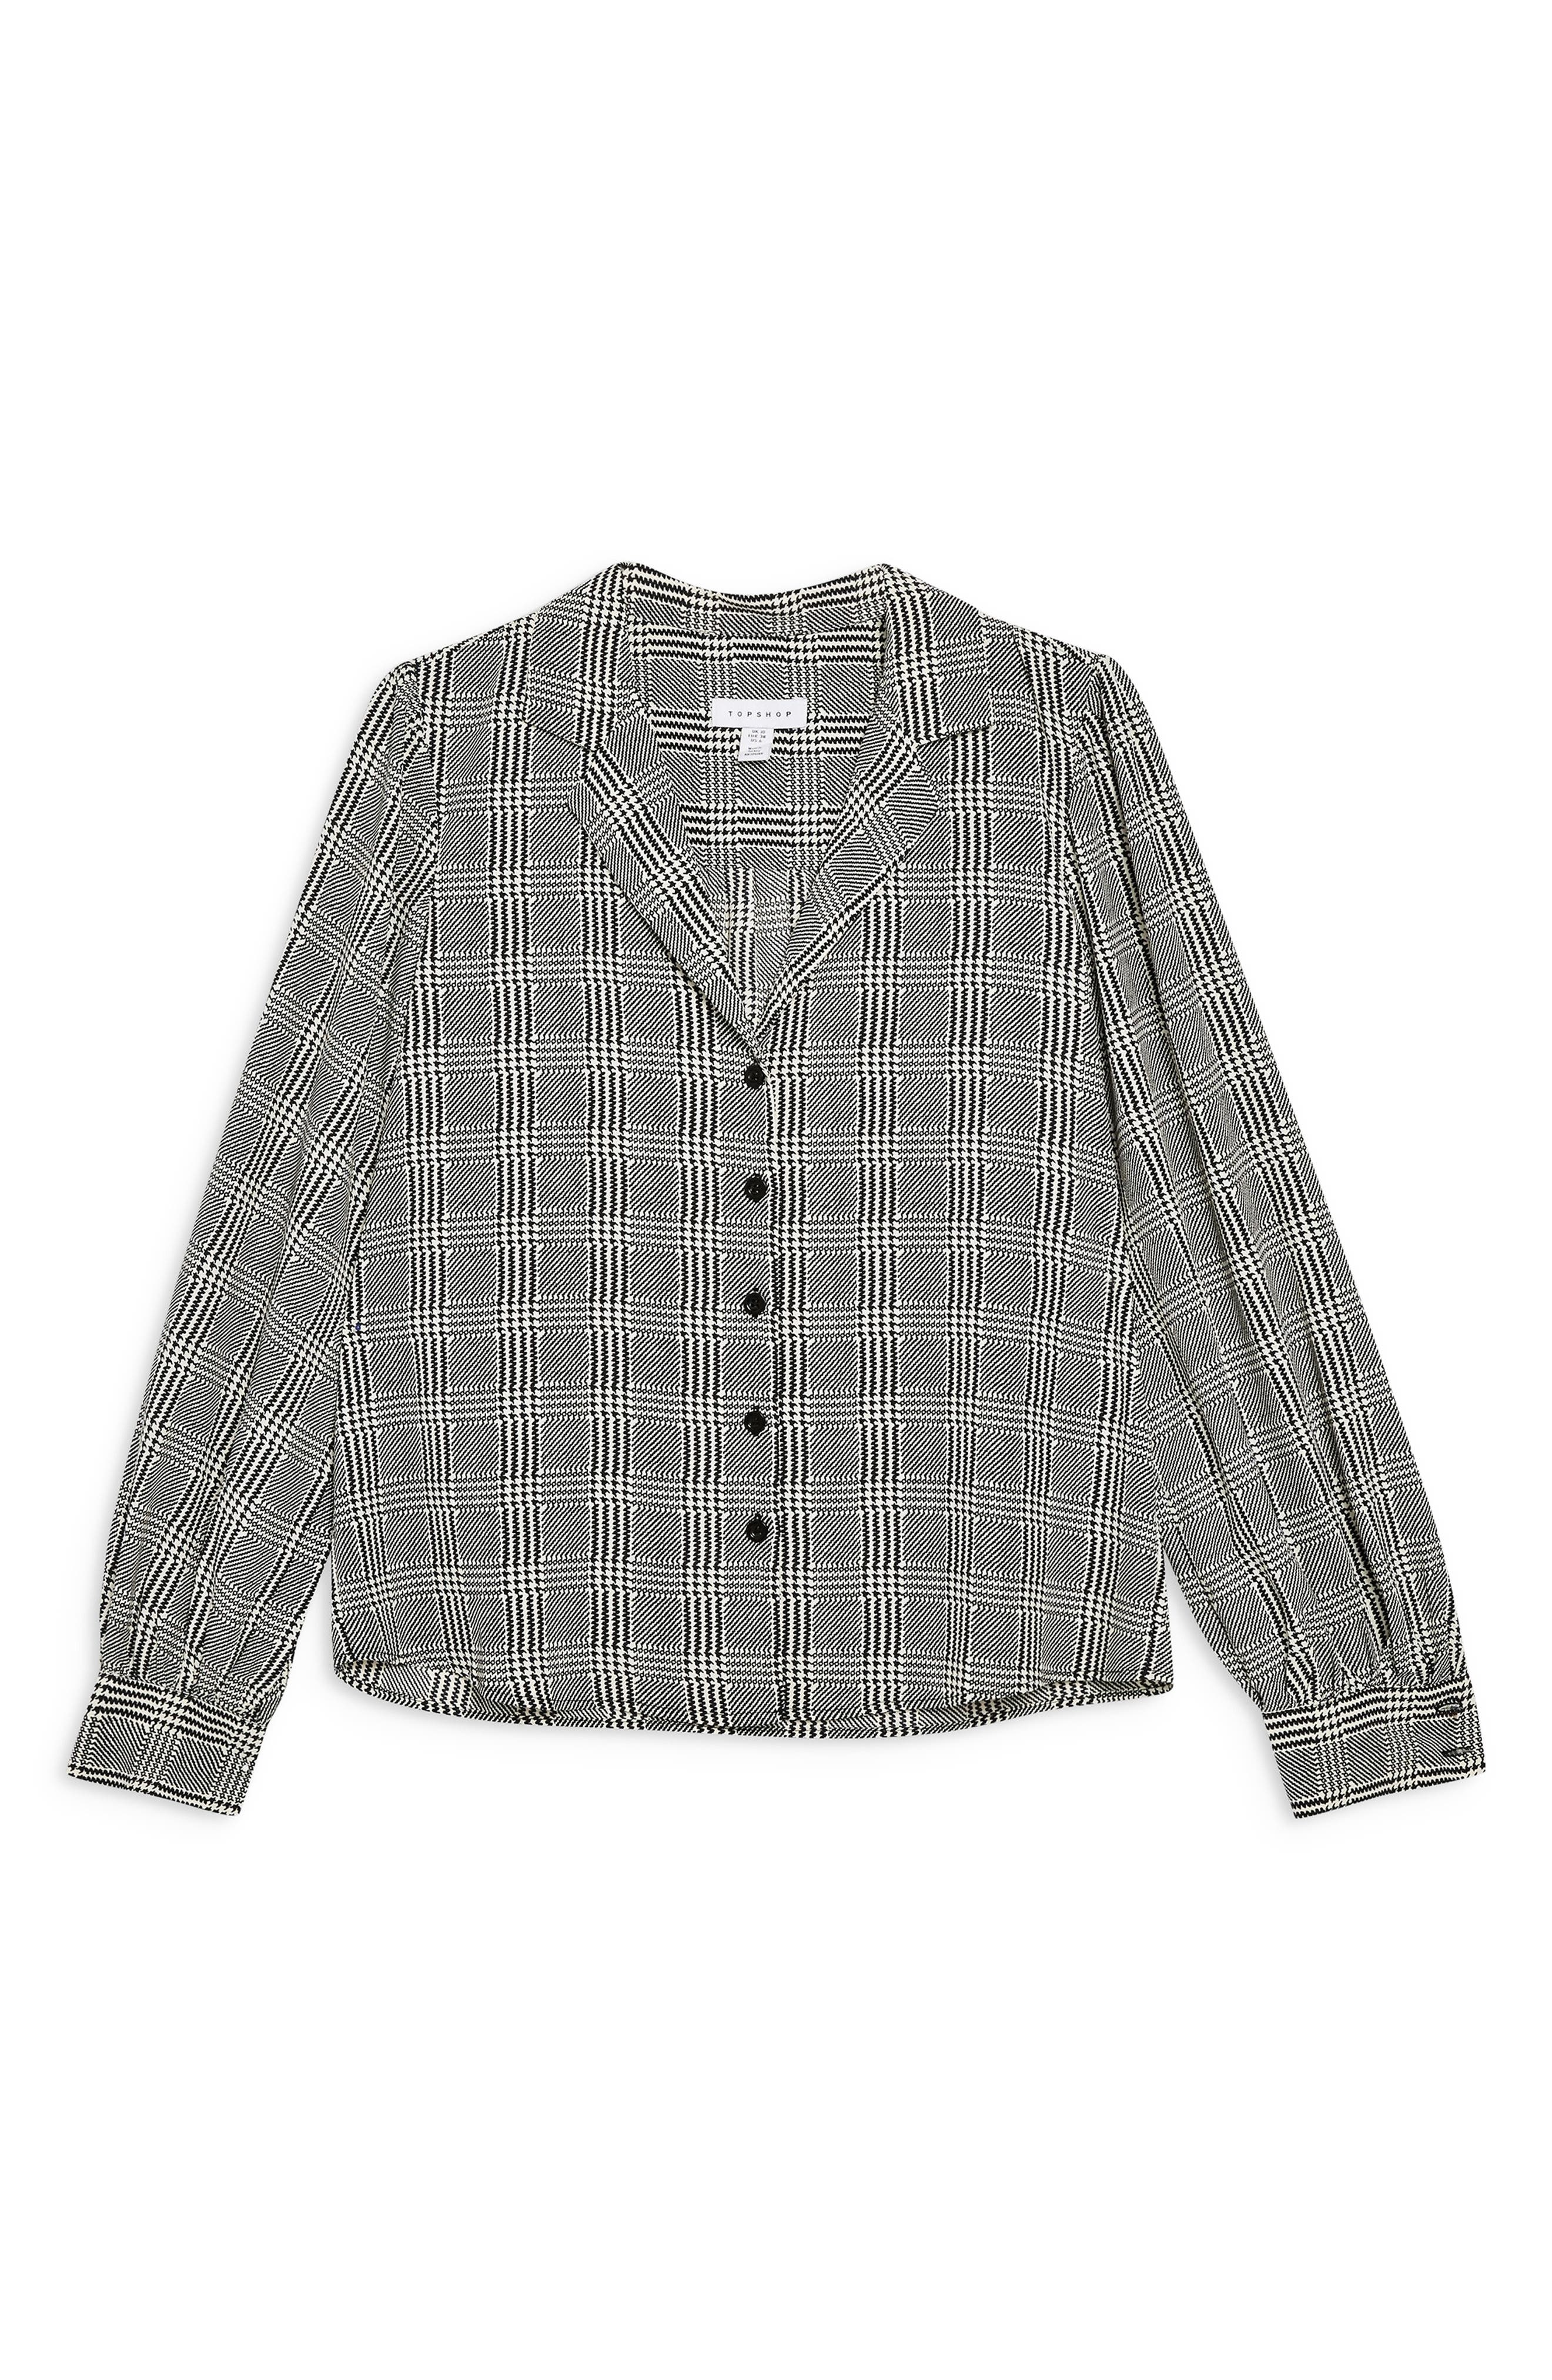 TOPSHOP,                             Houndstooth Shirt,                             Alternate thumbnail 4, color,                             BLACK MULTI